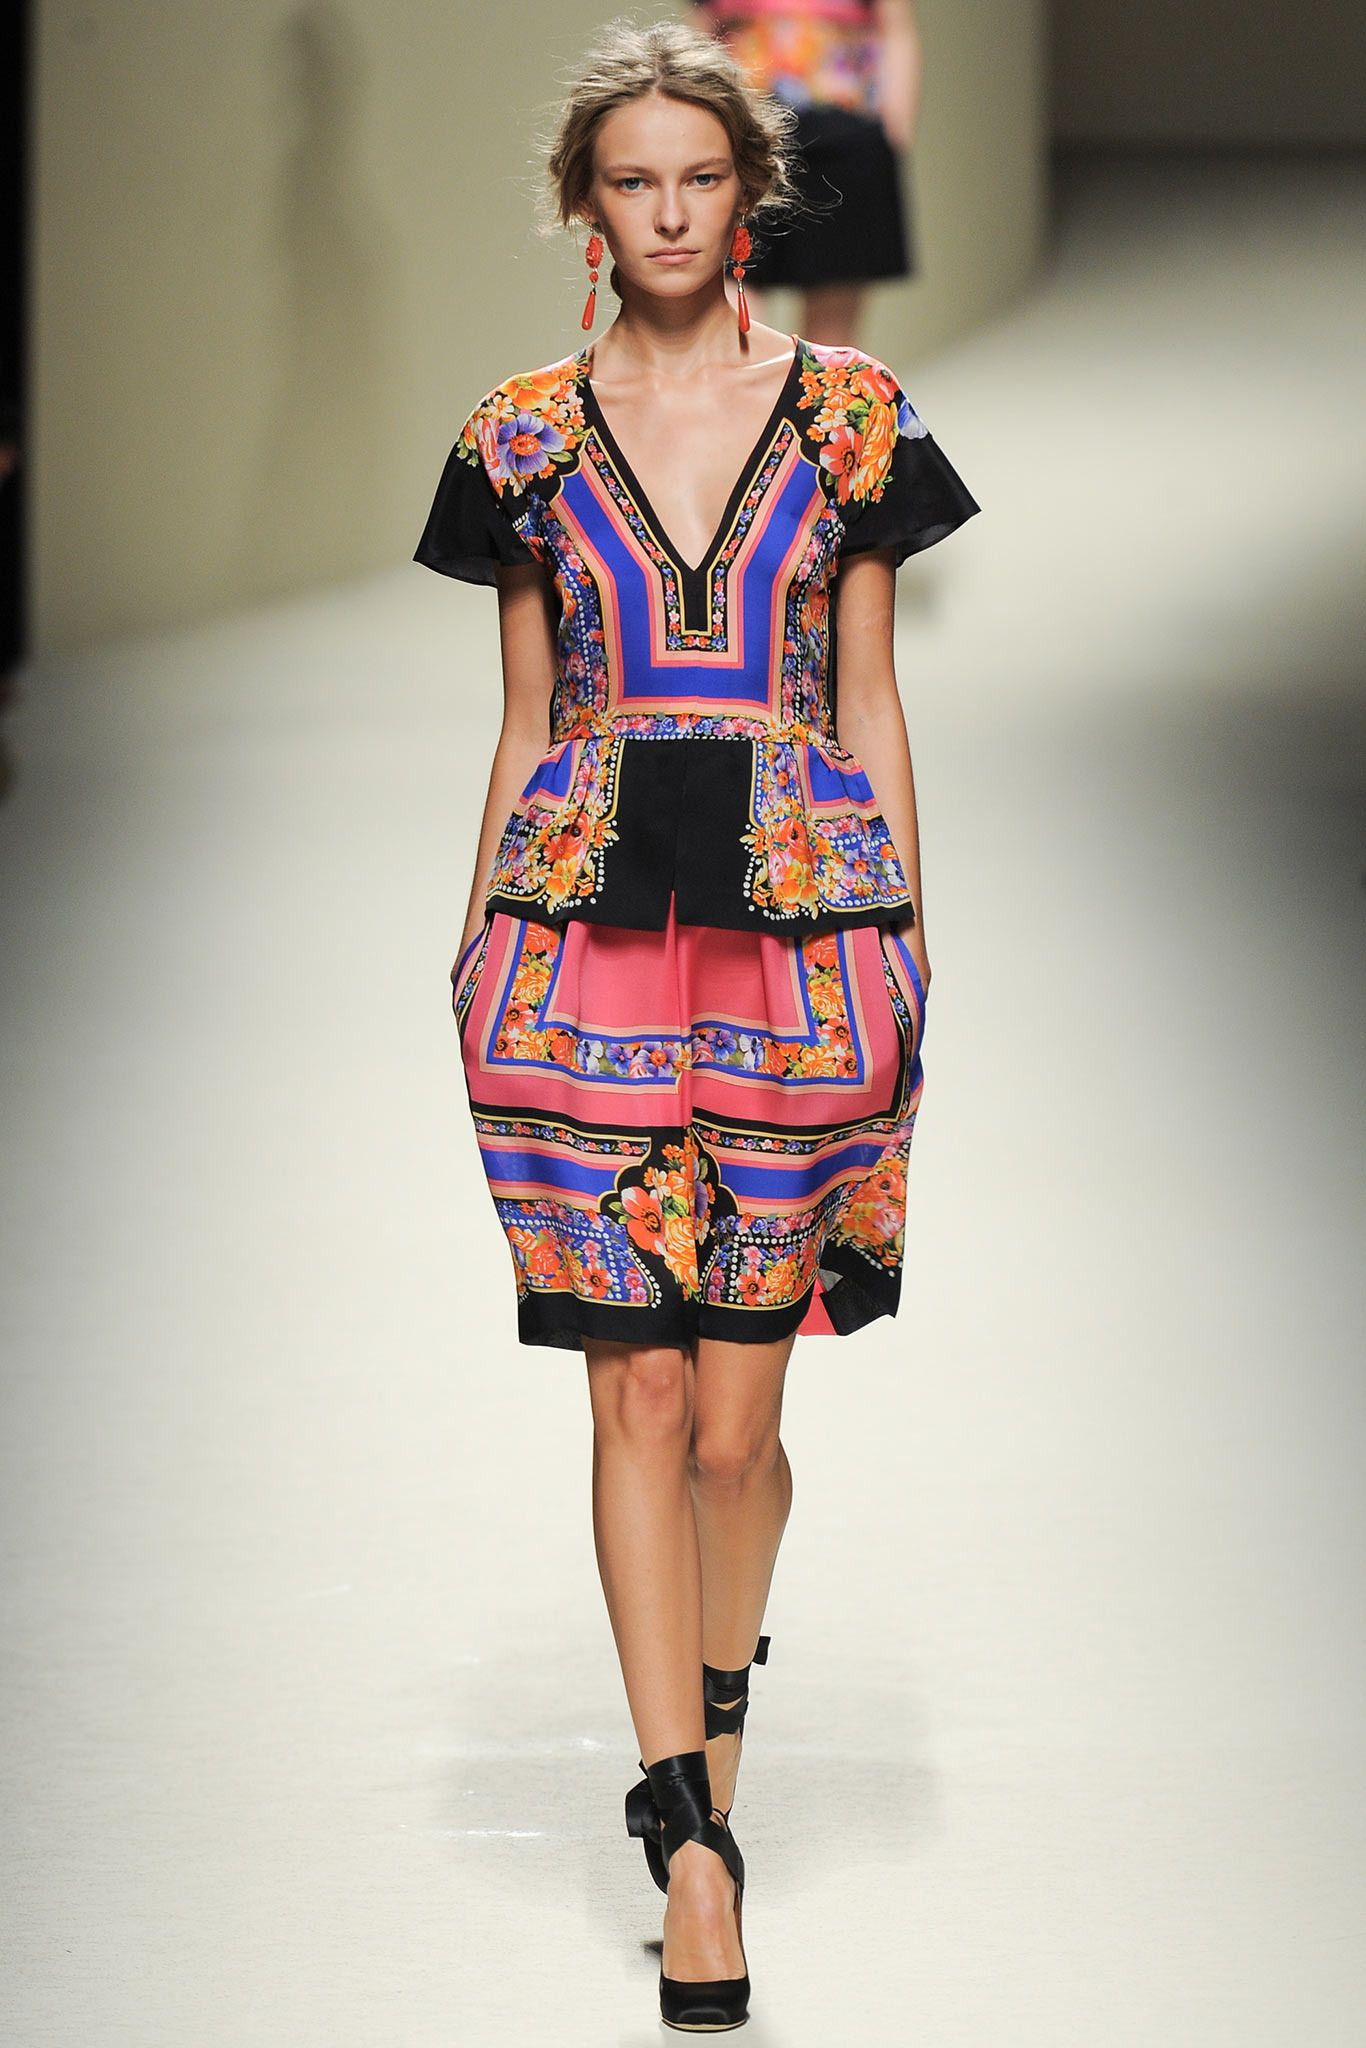 City print candle haute couture alberta ferretti and runway fashion